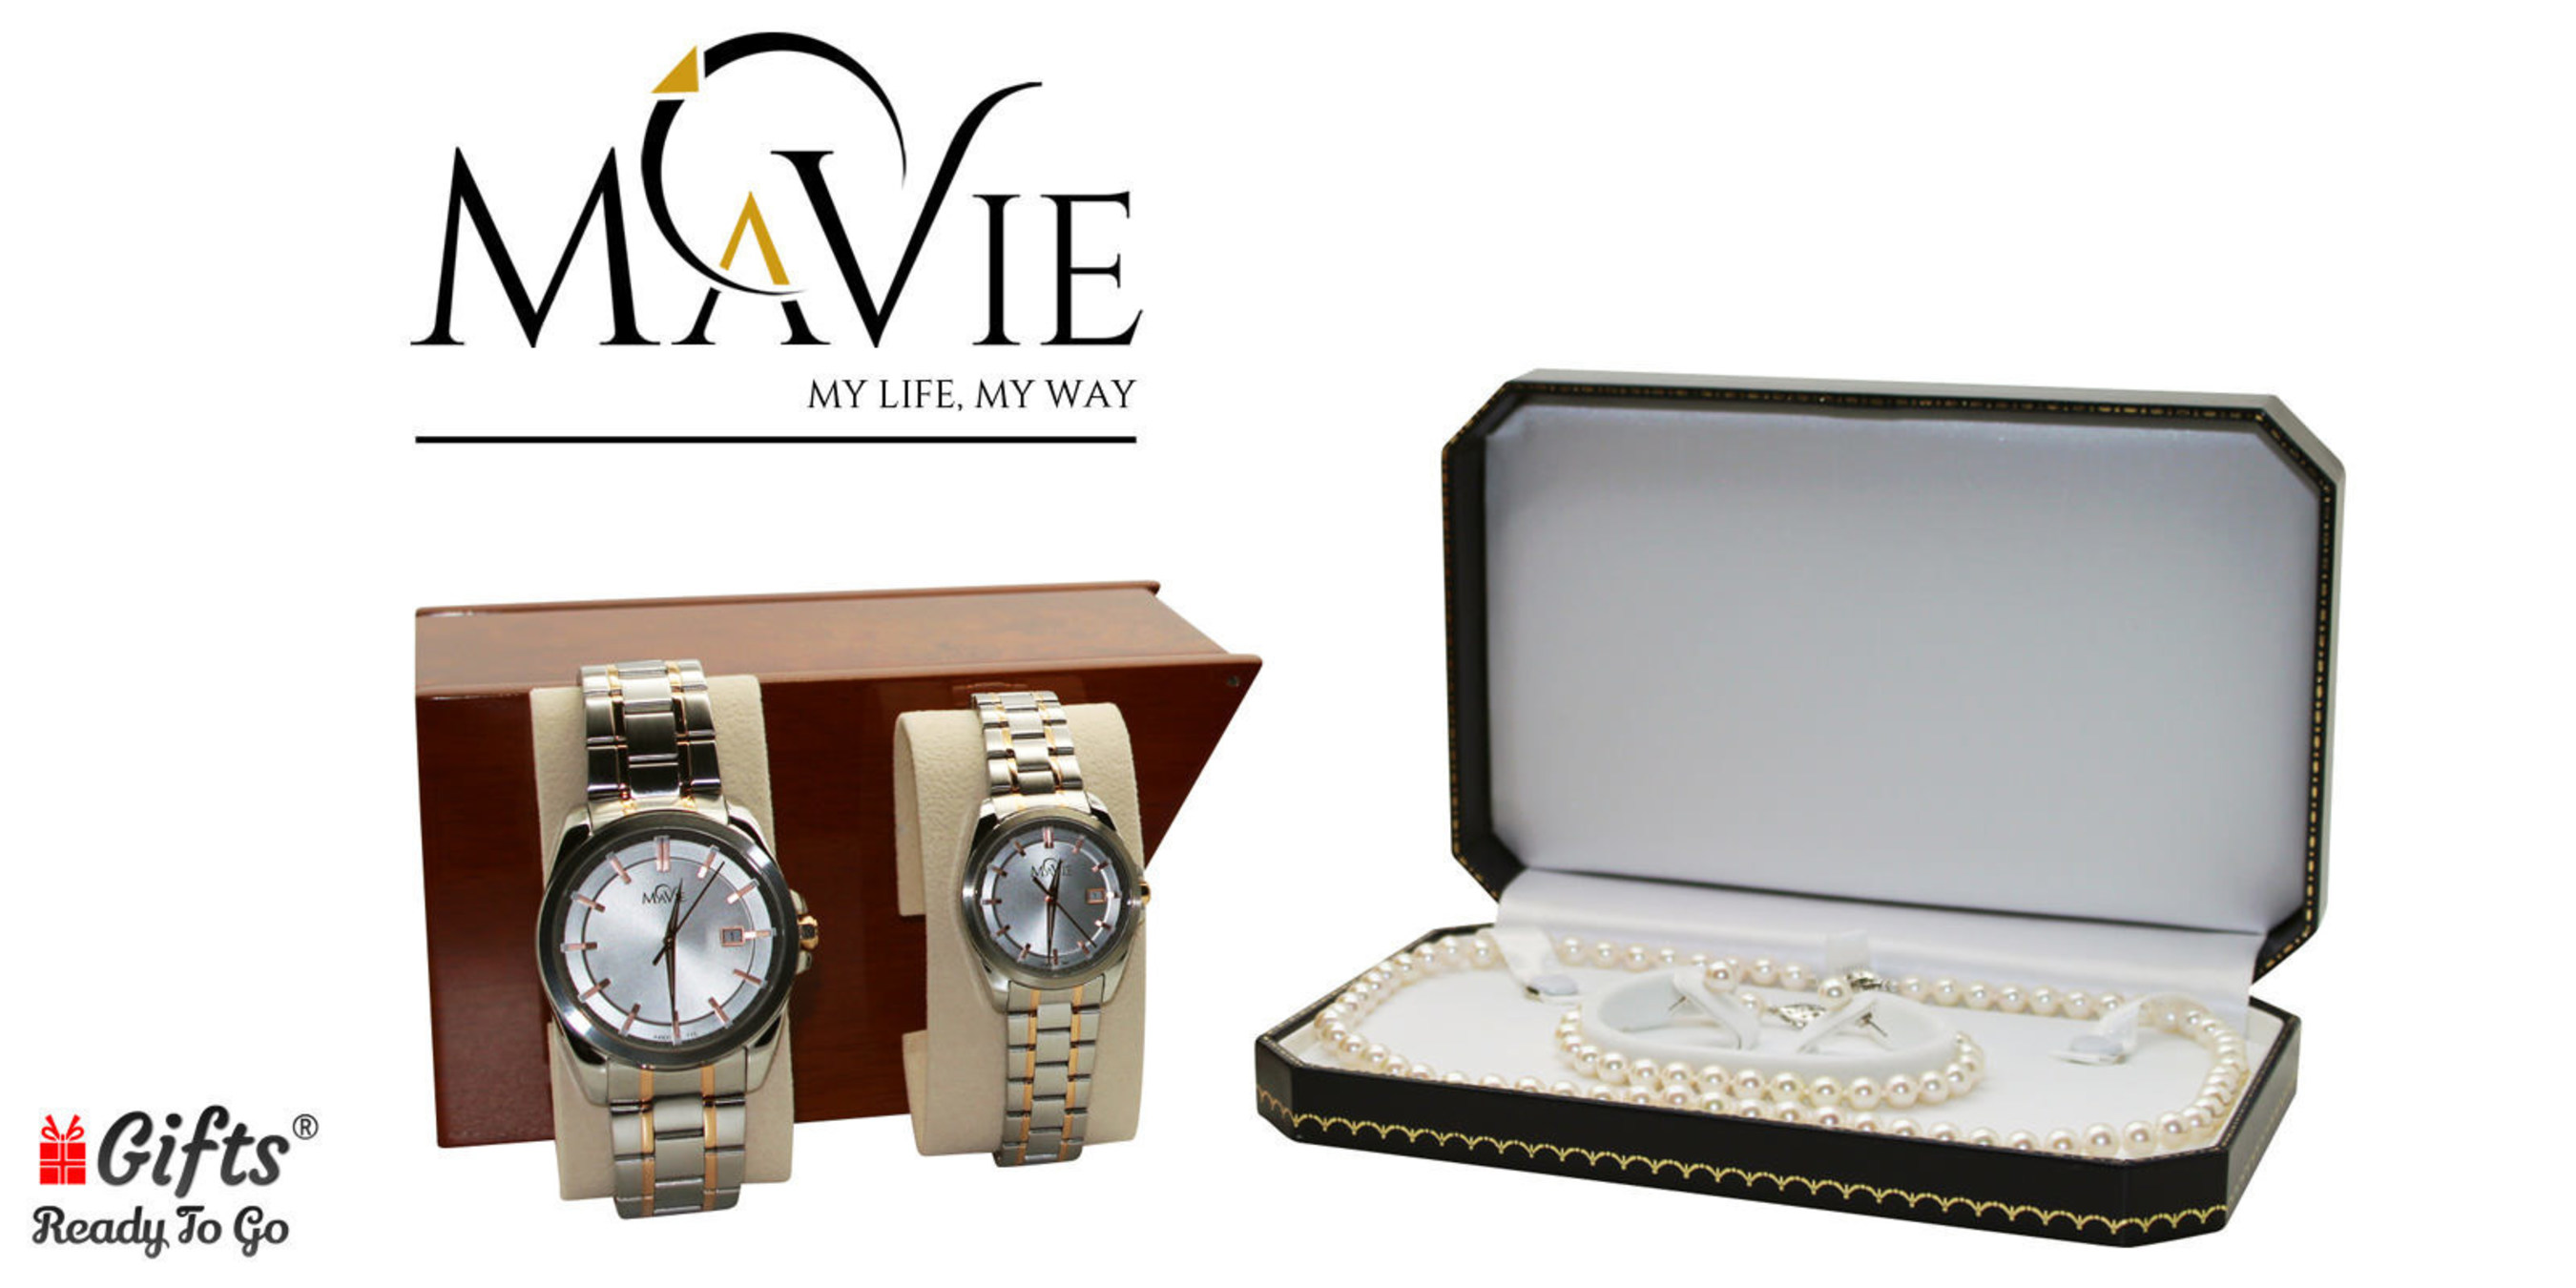 Luxury Gift Retailer Gifts Ready To Go Announces MaVie Pearl Jewelry and Fine Watches Collection